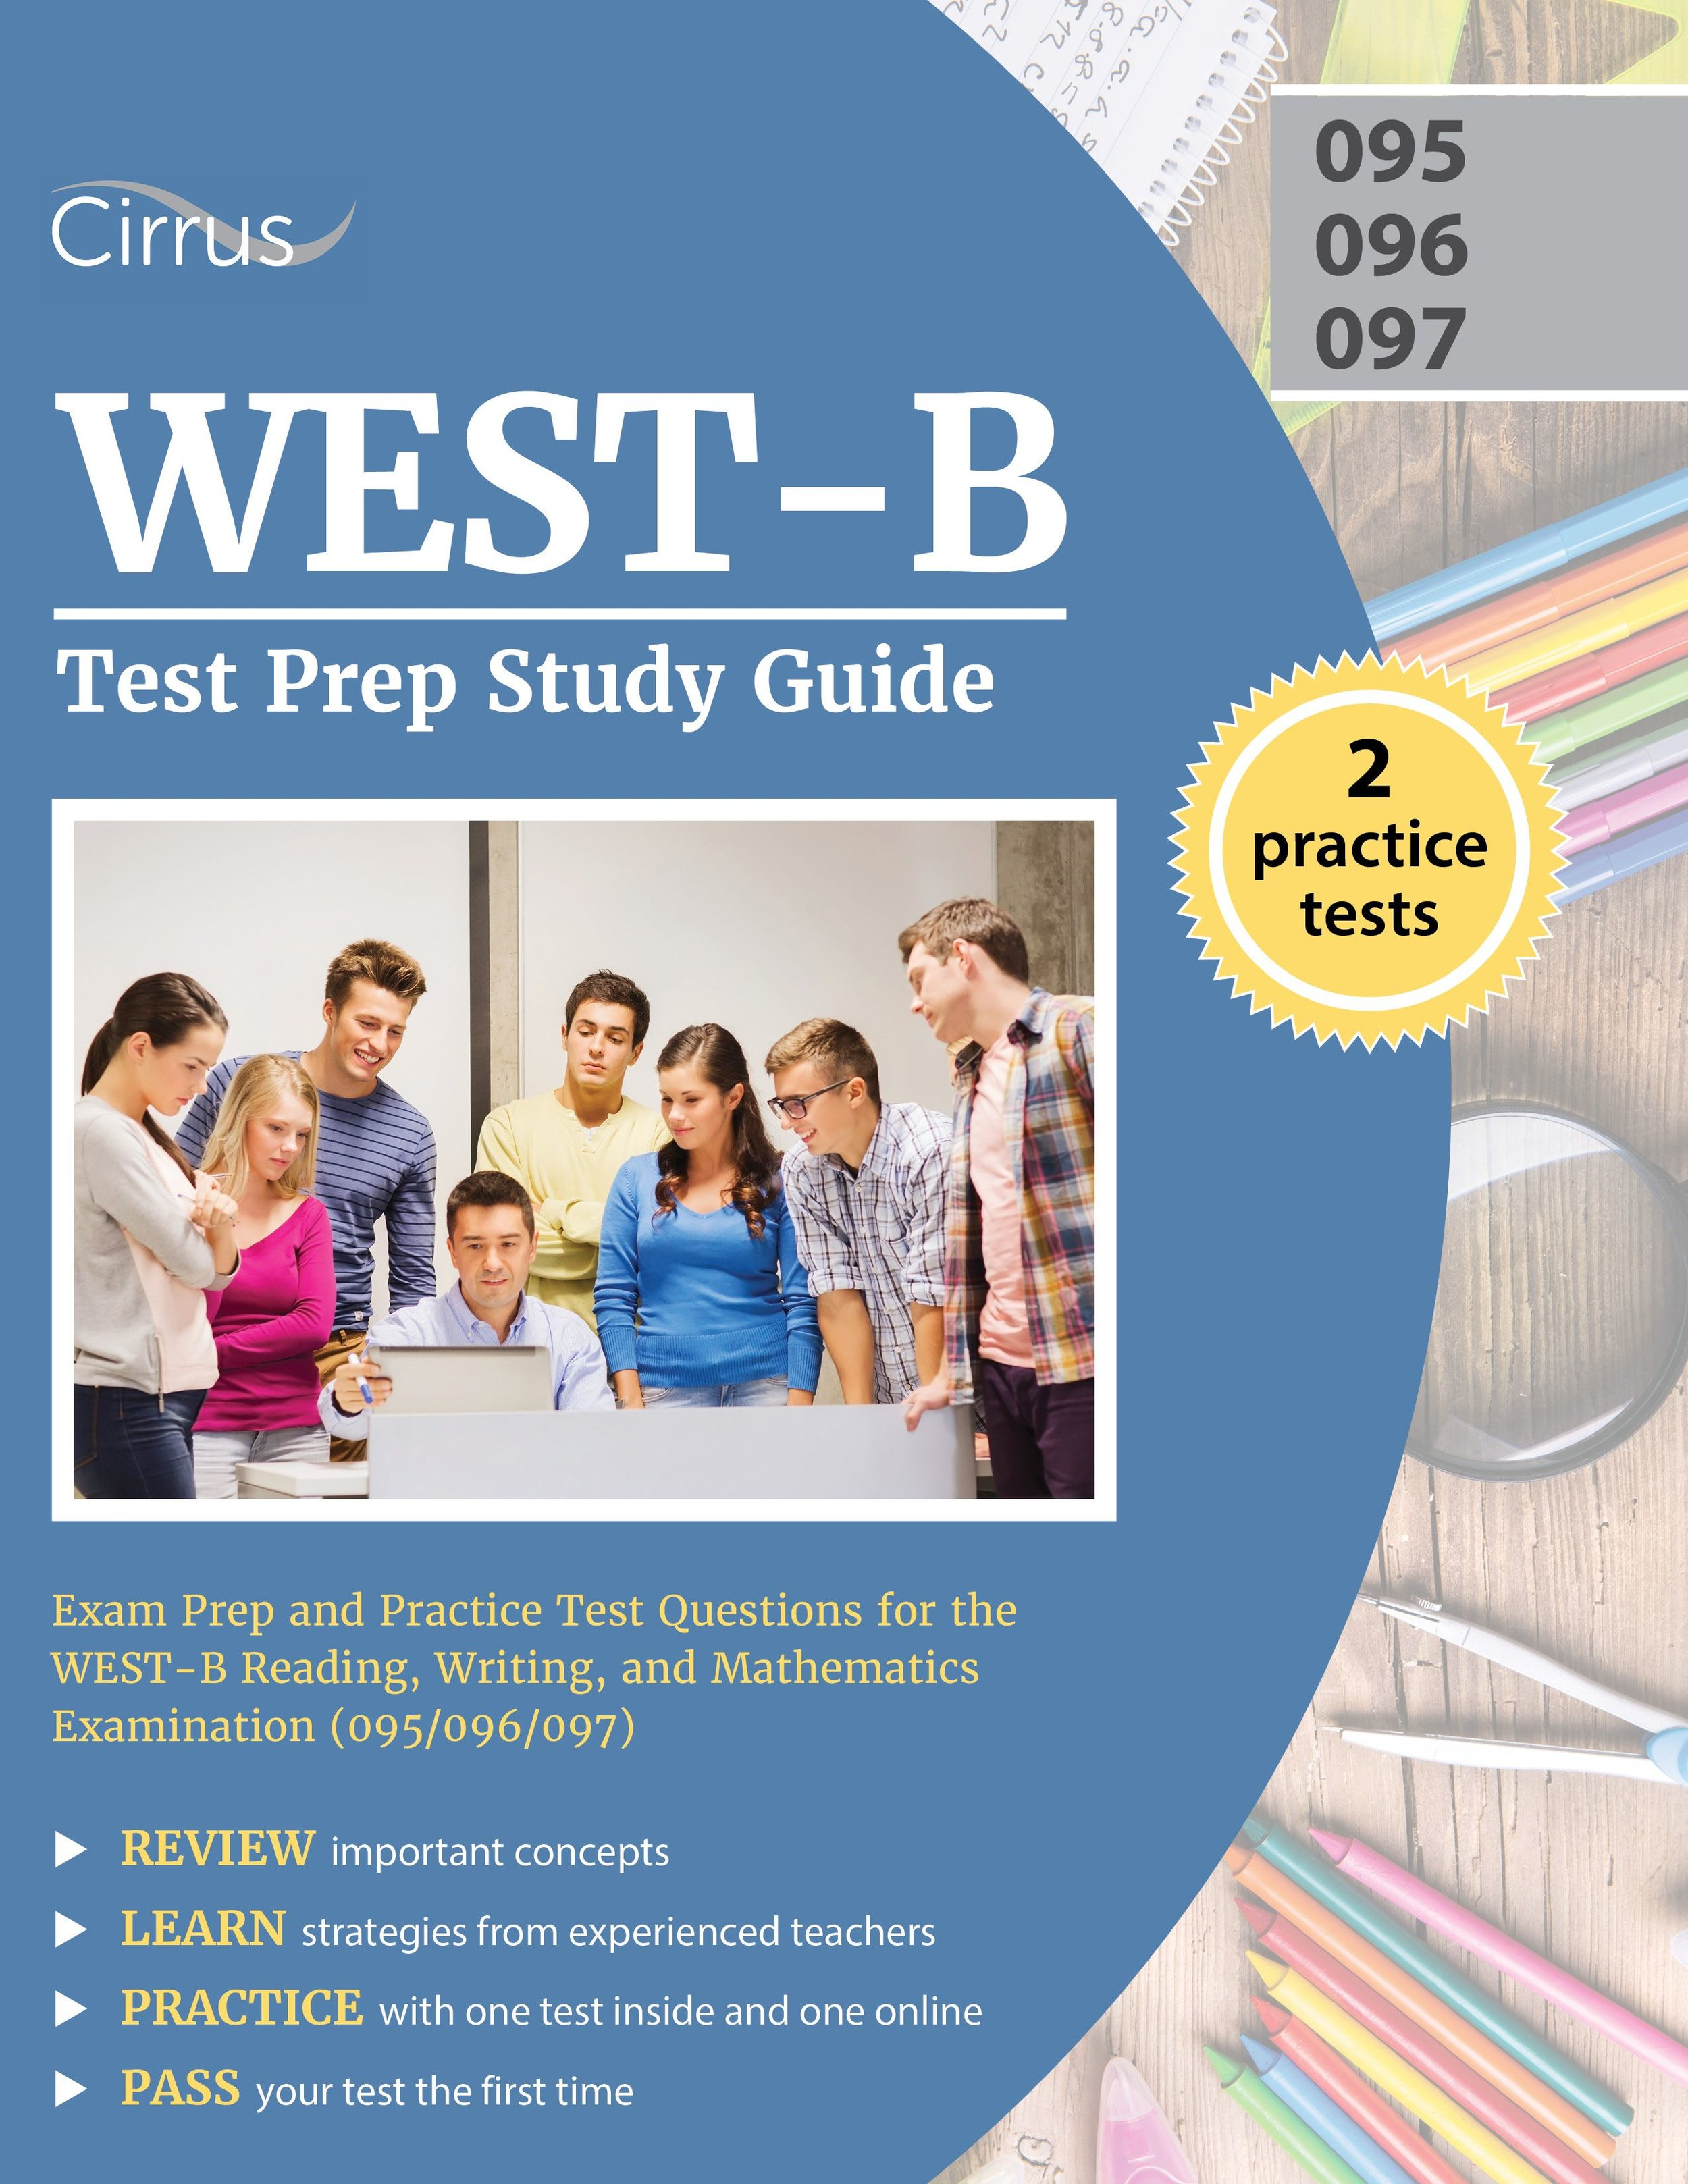 WEST-B Test Prep Study Guide 095, 096, 097